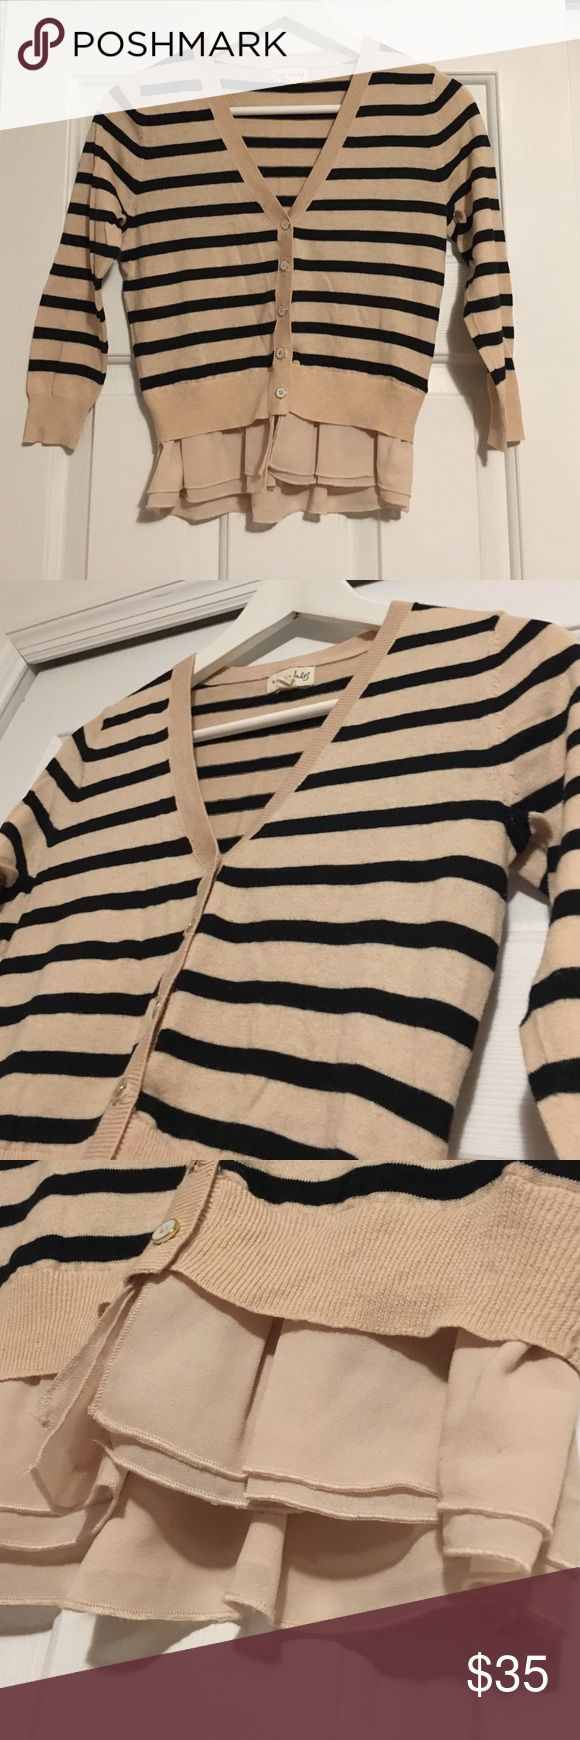 Nude and Navy Stripes Cardigan 3/4 Sleeves Stripes cardigan with detail on the bottom. Worn once. Maison Jules Sweaters Cardigans